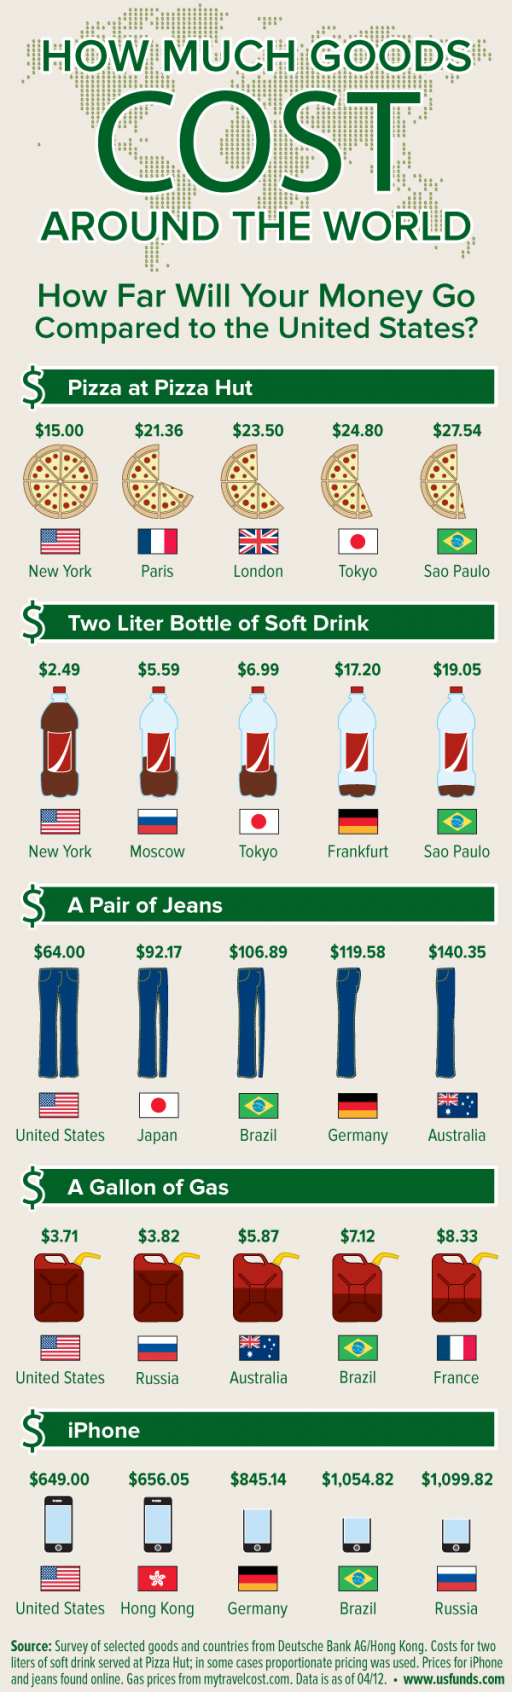 How much goods cost around the world